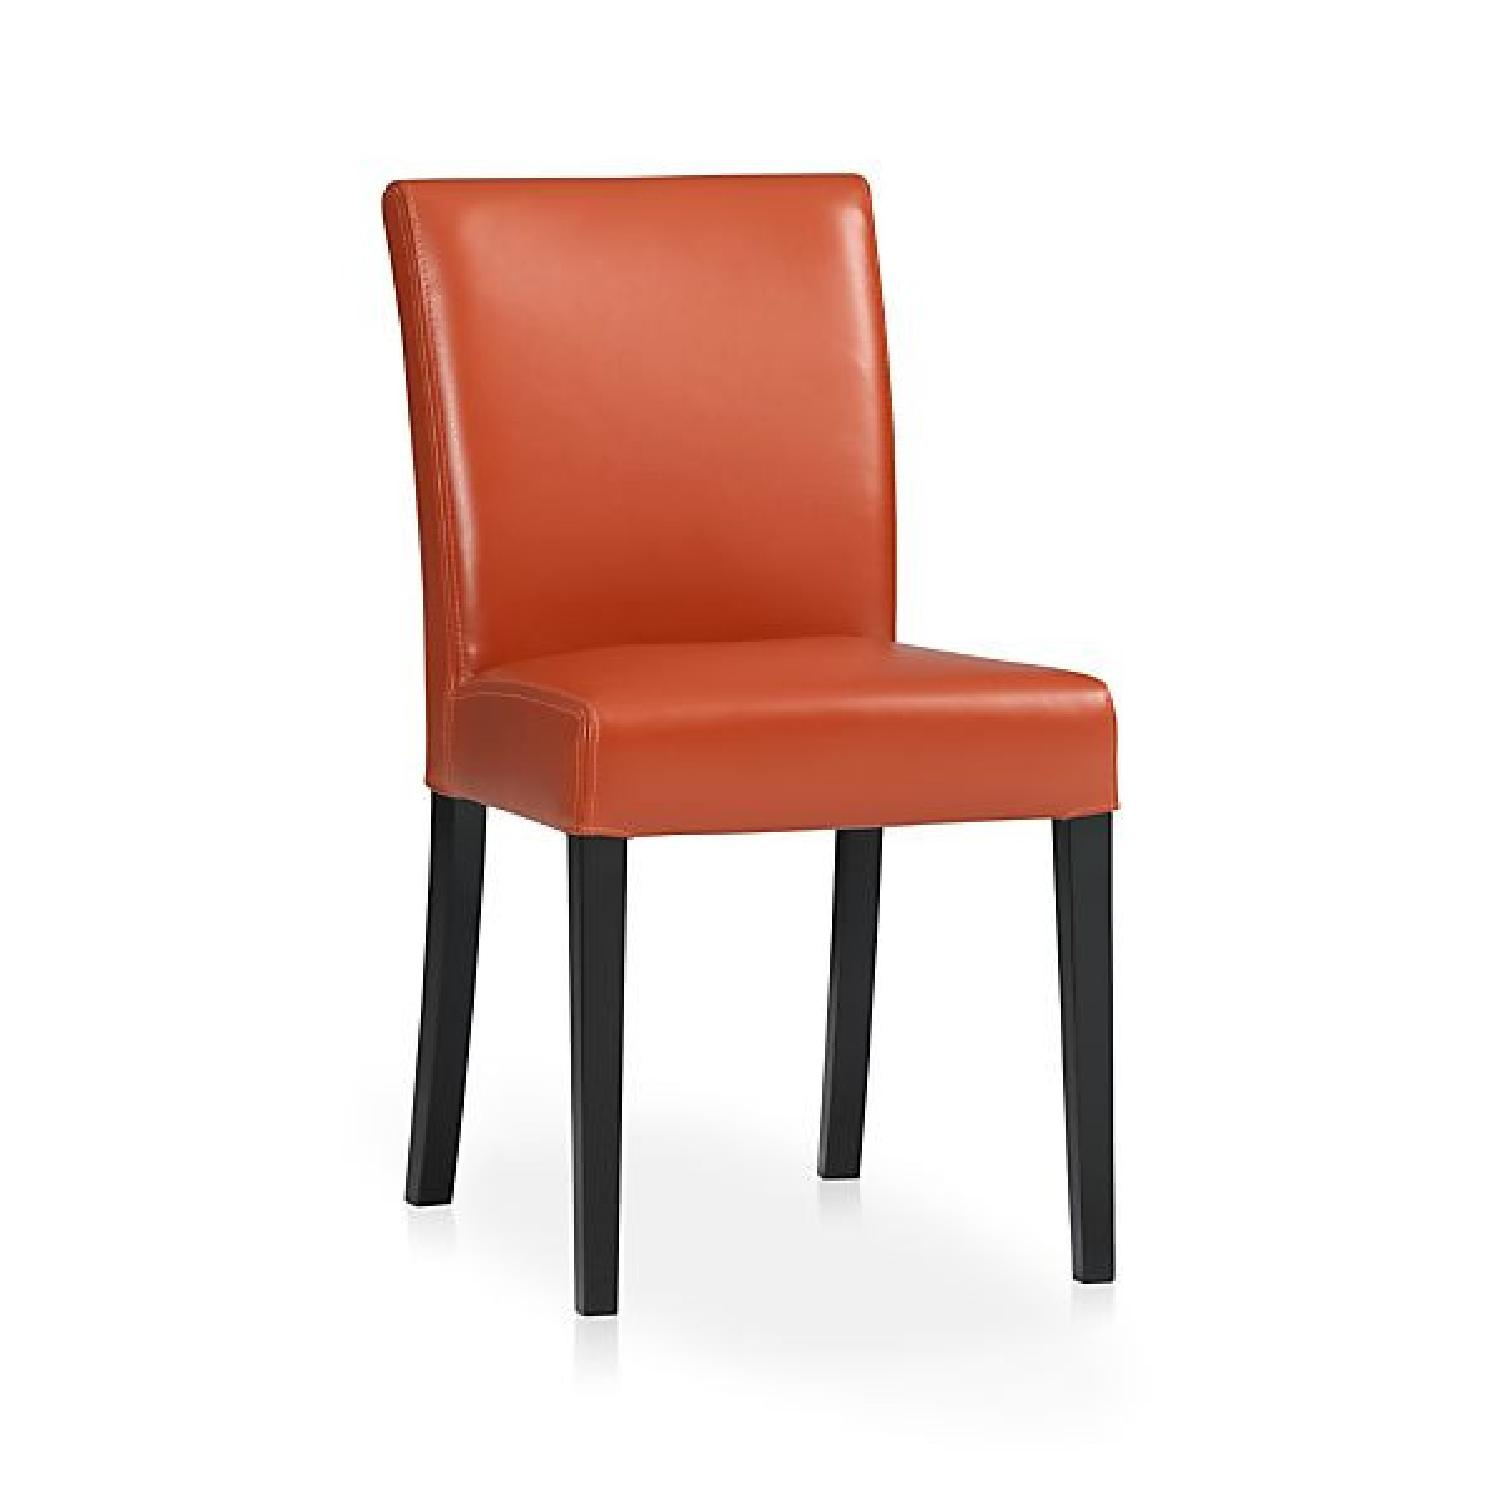 Crate & Barrel Lowe Persimmon Dining Chairs - image-0